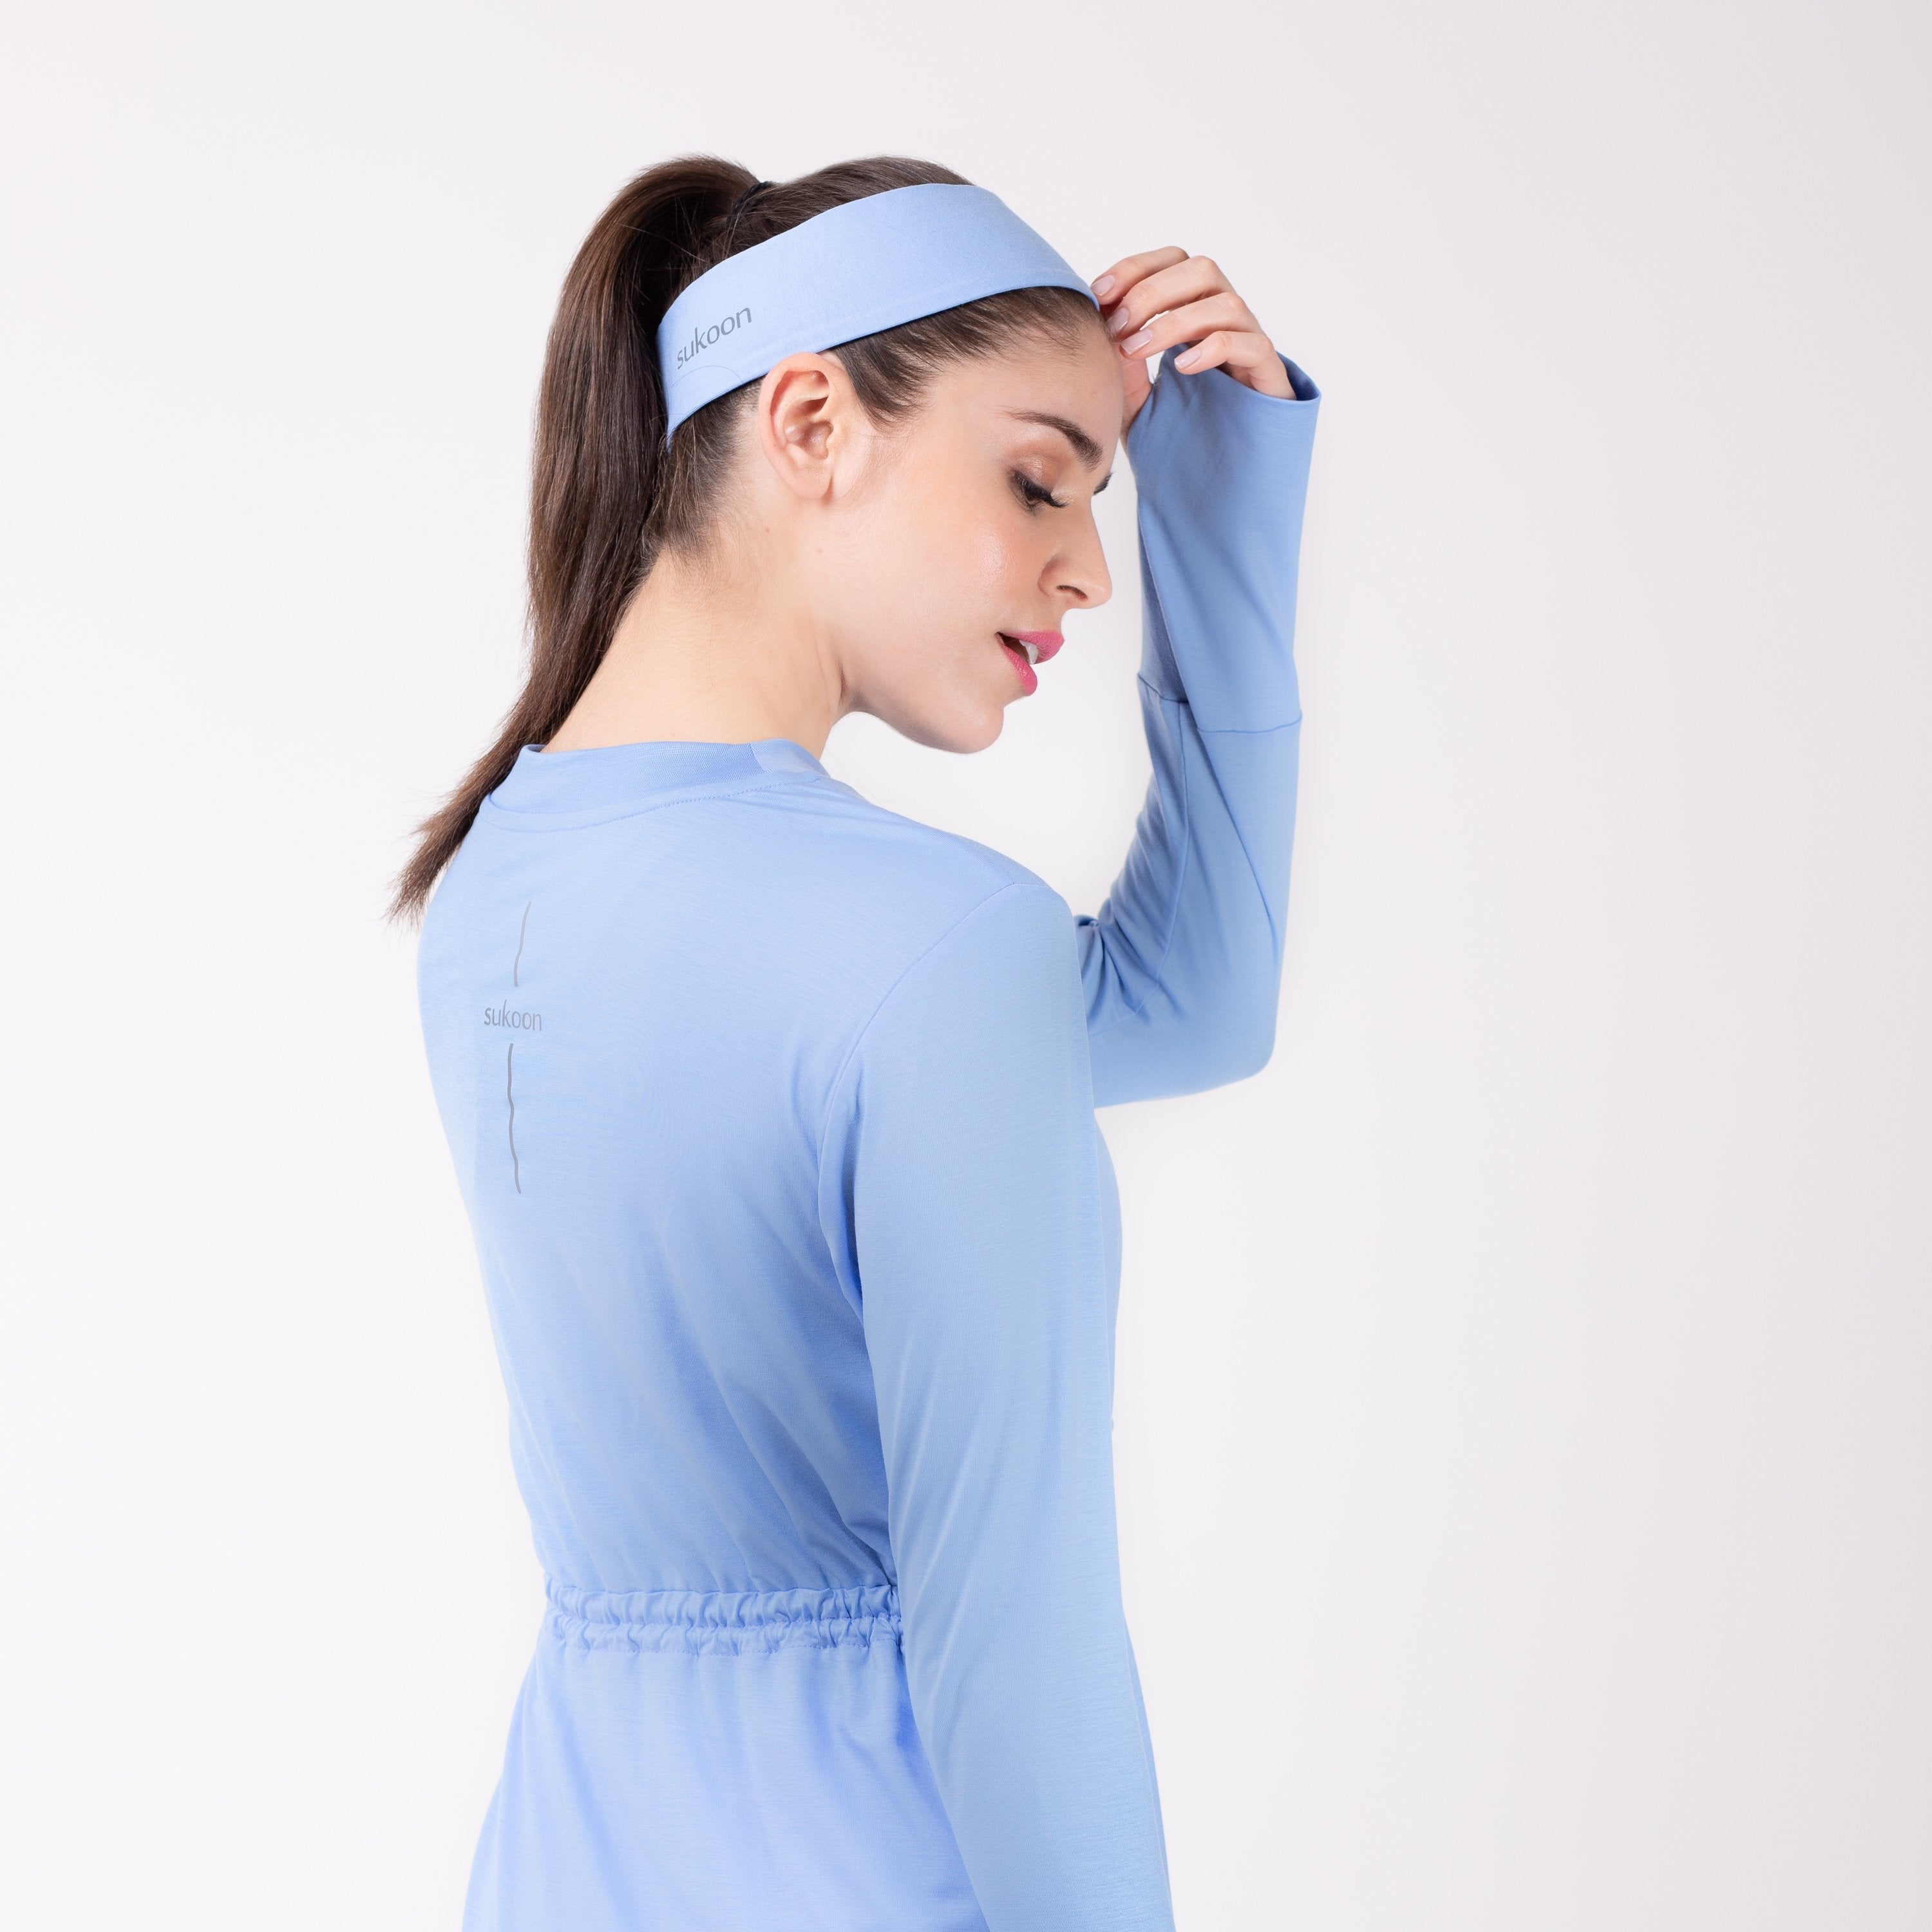 Back detail of woman in sky blue shirt with matching sky blue HAWA headband.